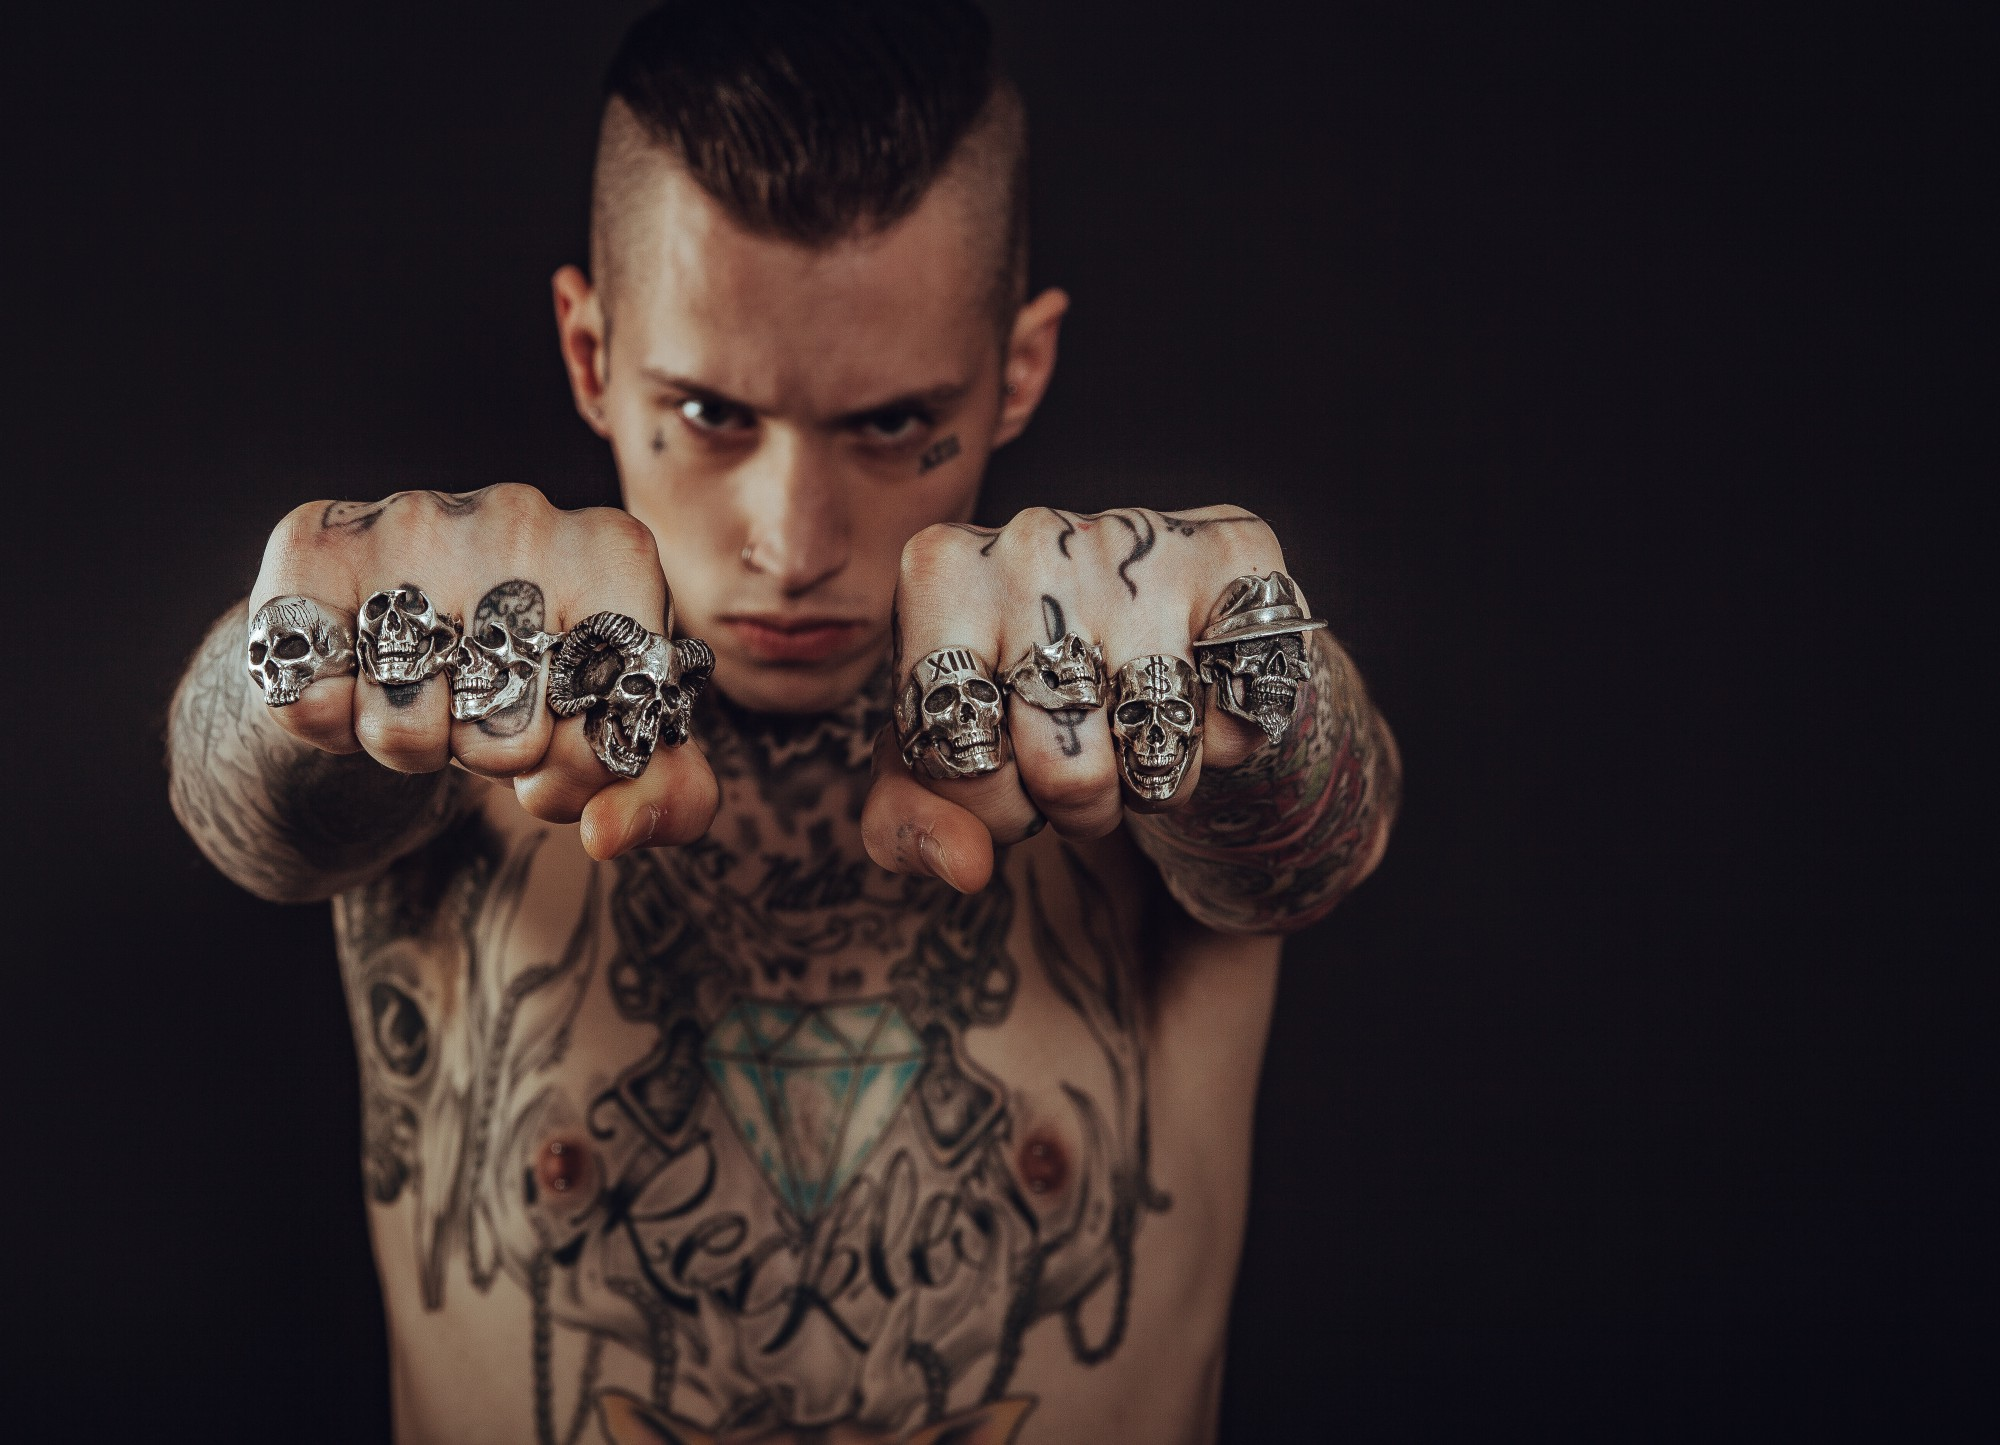 Shirtless man with tatoos making fists and wearing skull rings on all fingers.